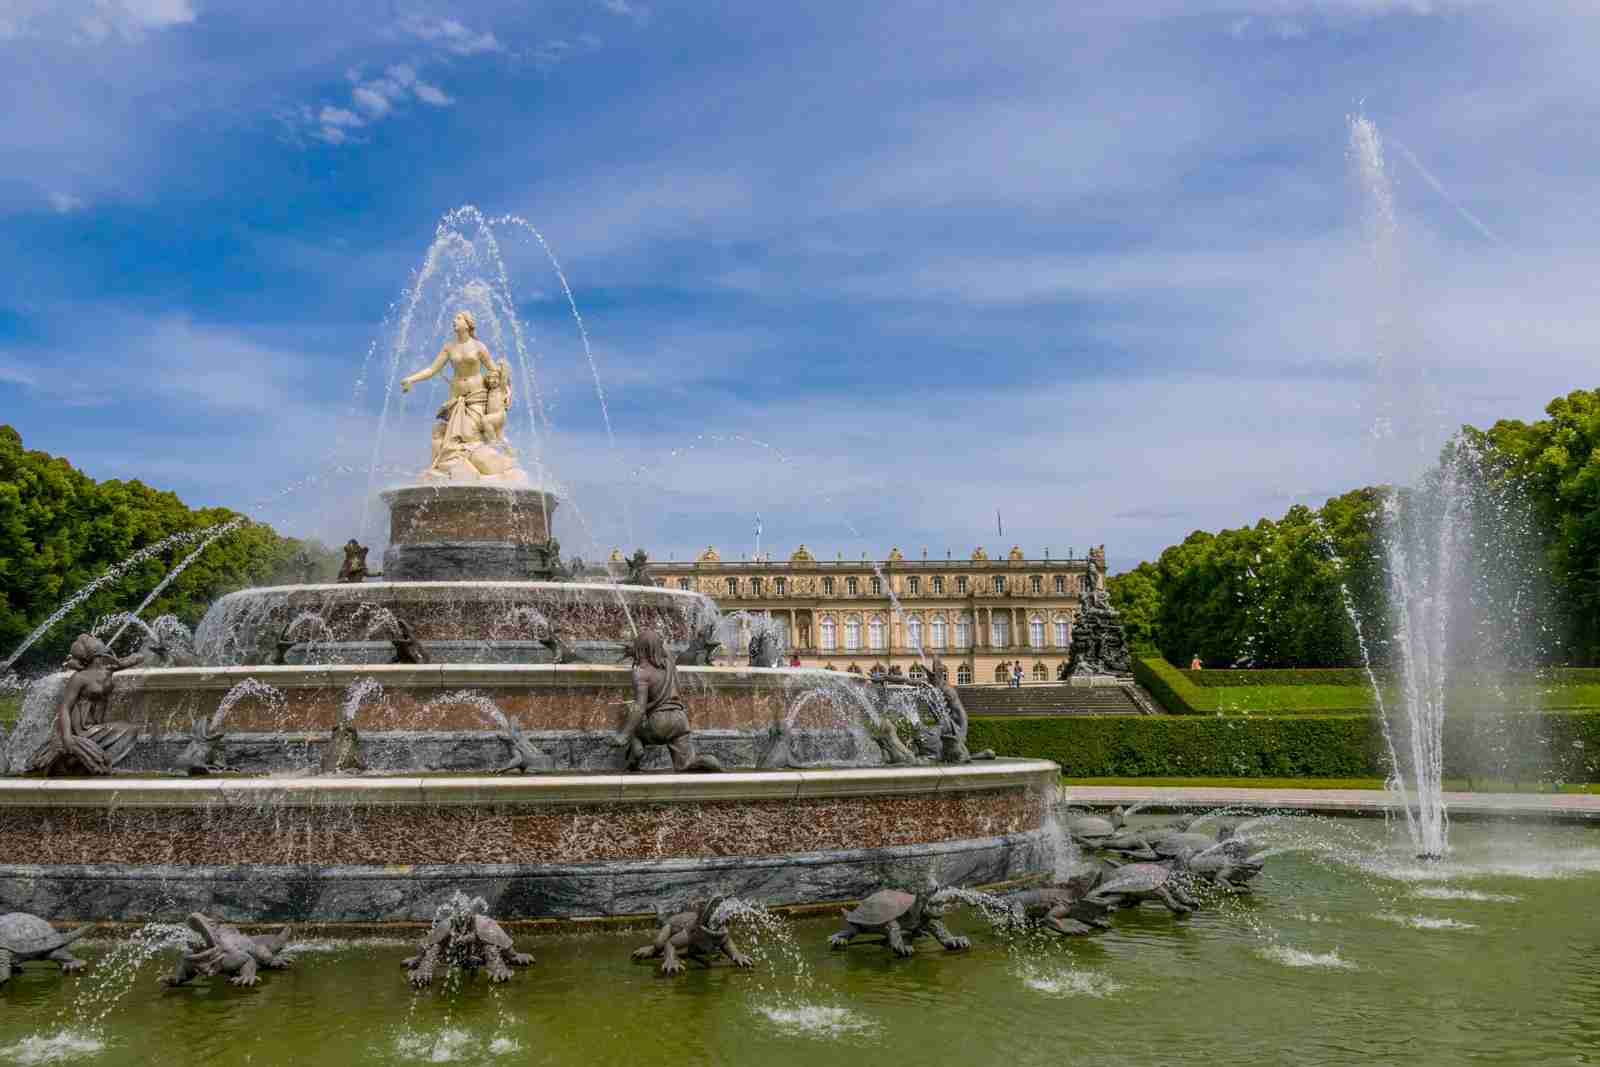 Latona Fountain, Herrenchiemsee Palace, Herreninsel. (Photo by footageclips / Shutterstock)